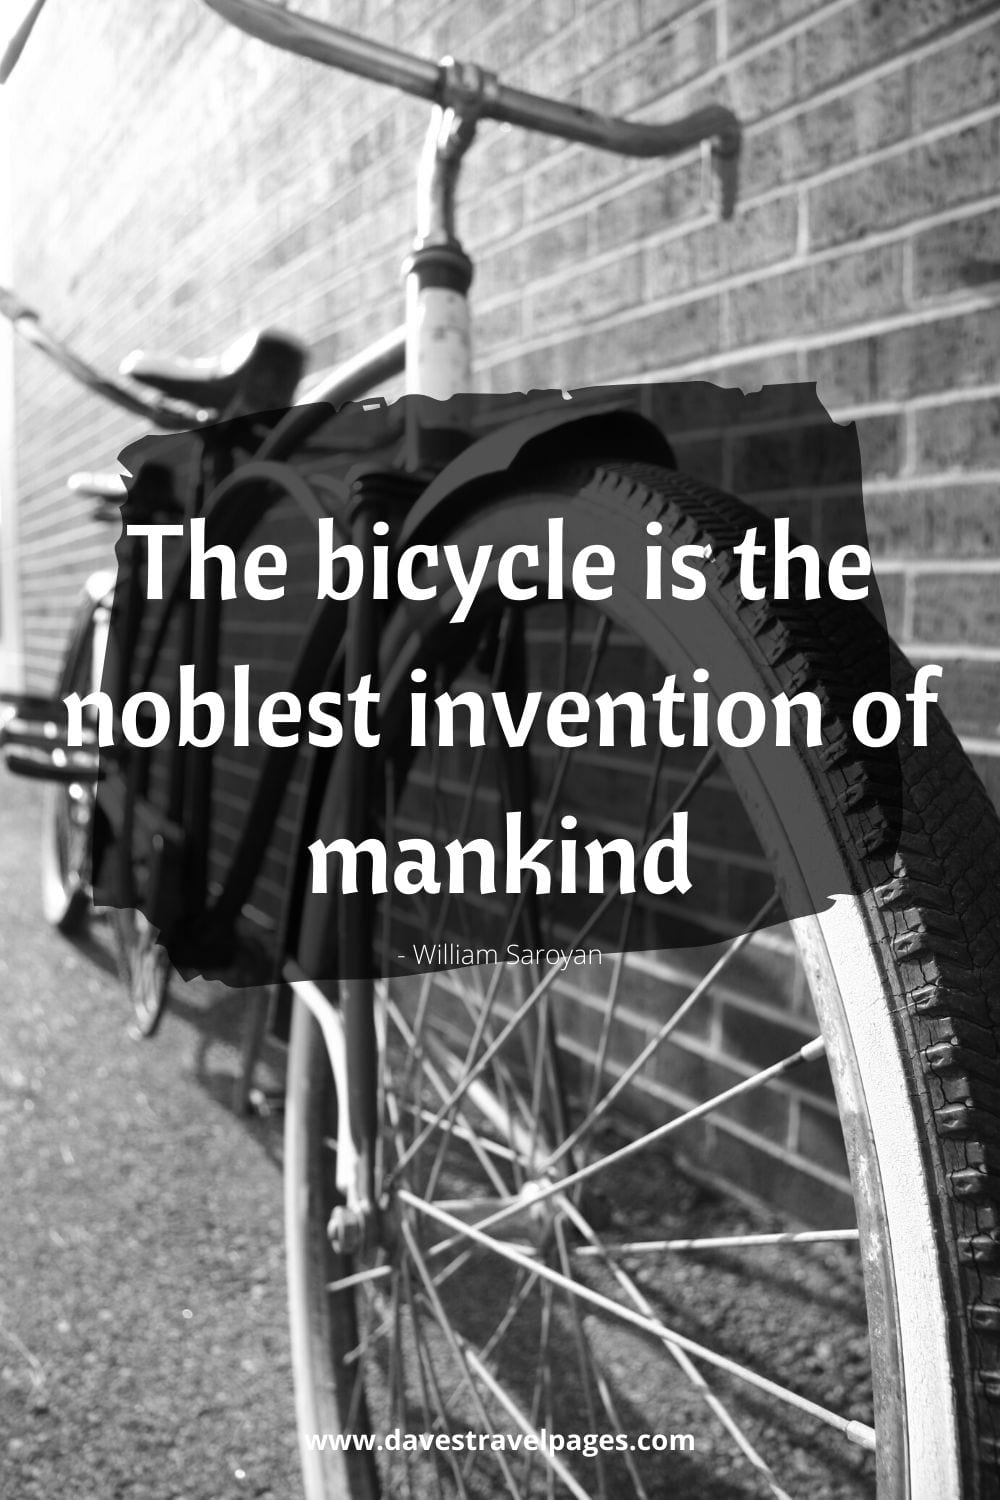 The bicycle is the noblest invention of mankind. ~ William Saroyan